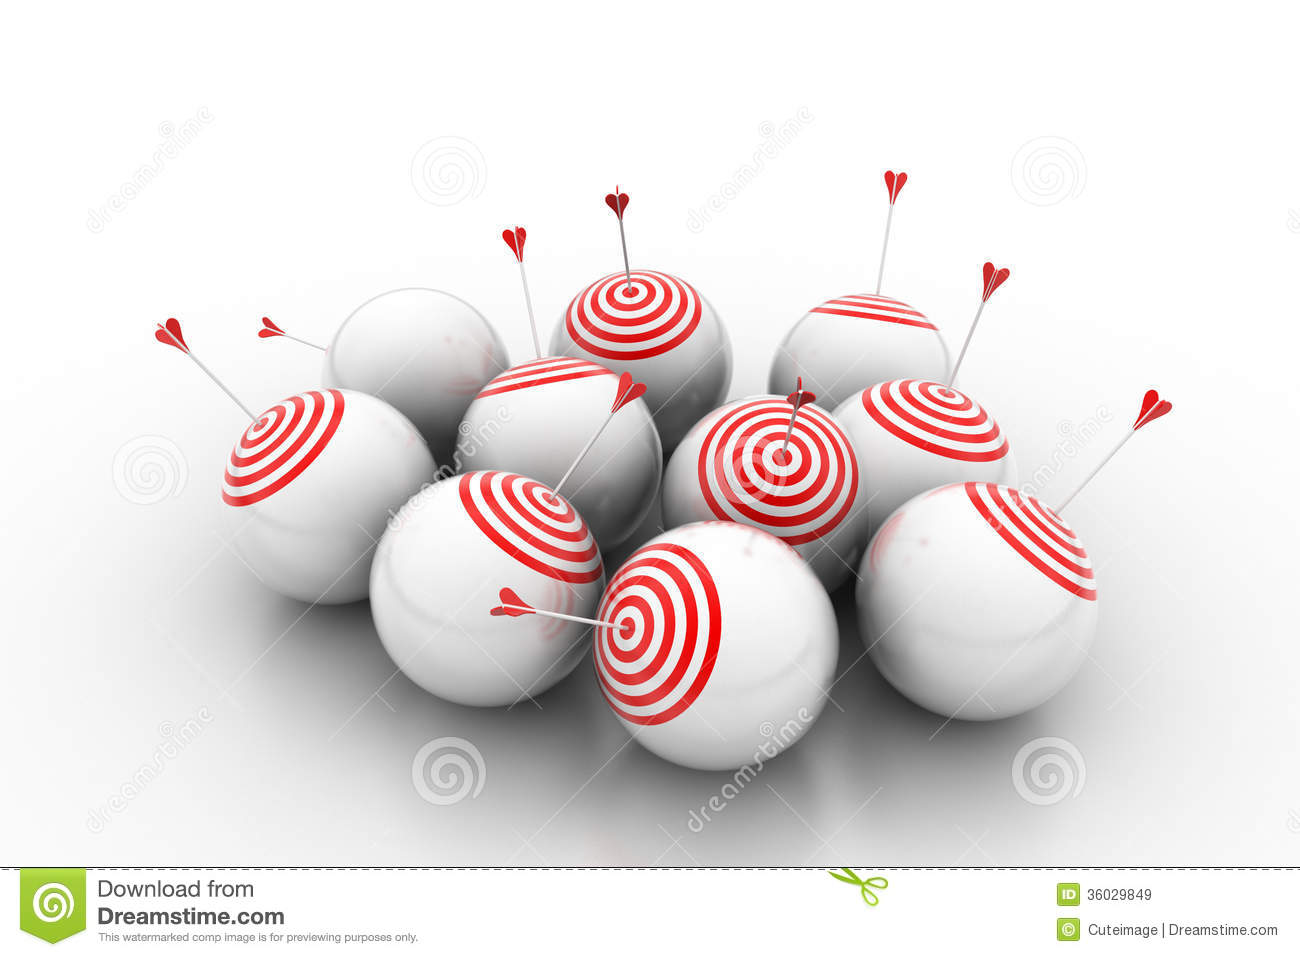 symbol-targeted-marketing-white-color-background-36029849.jpg